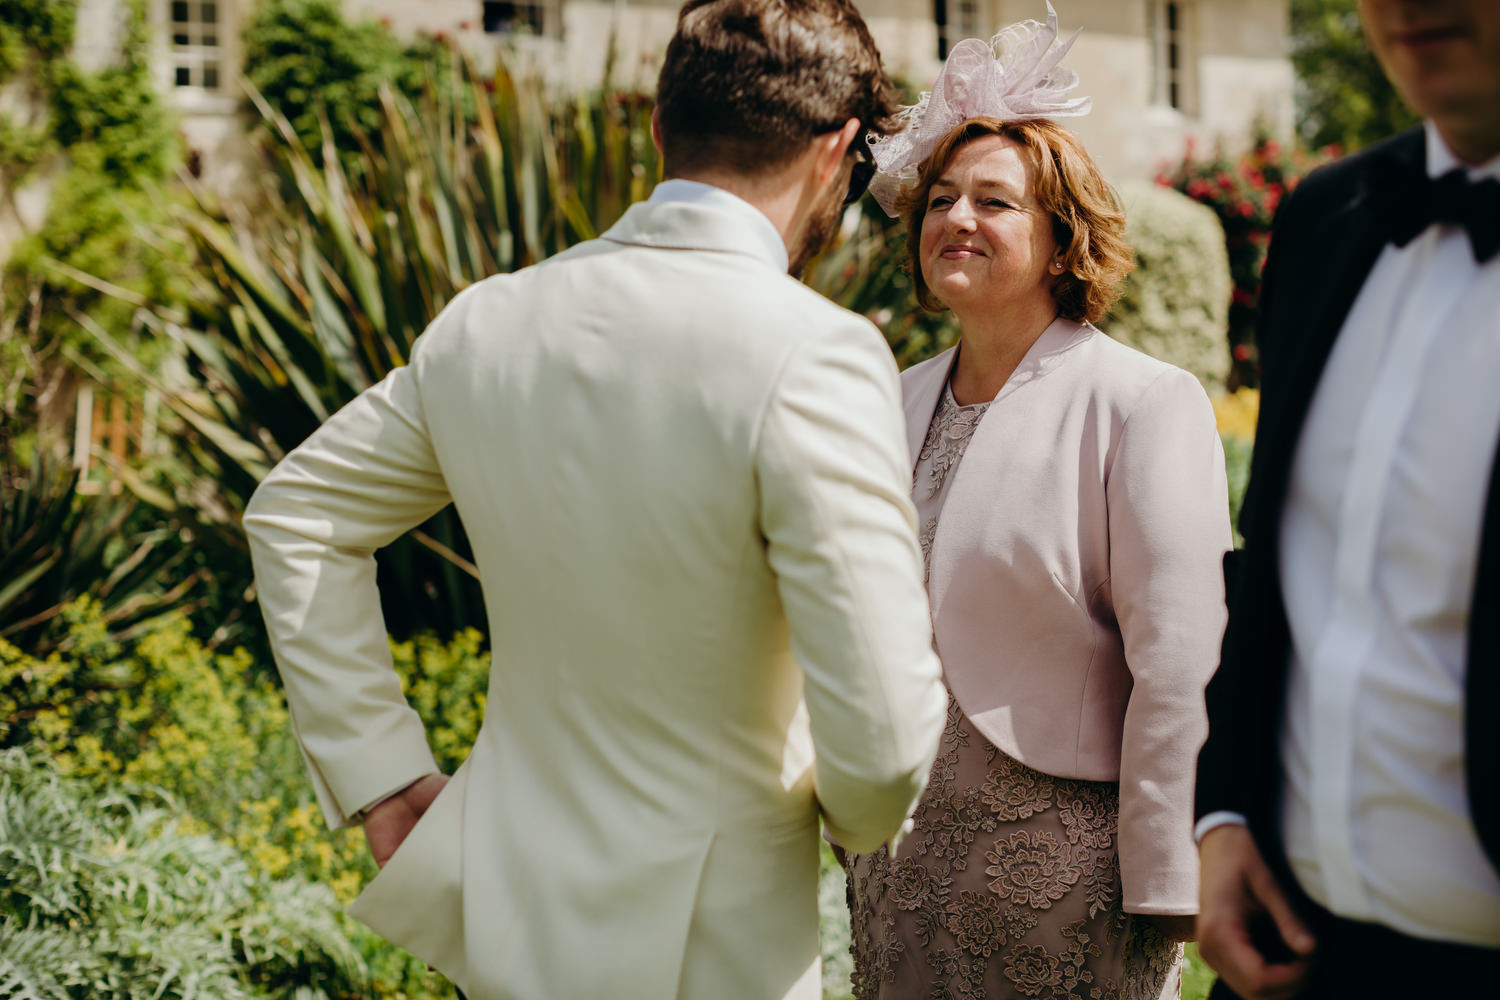 mother sees son in suit